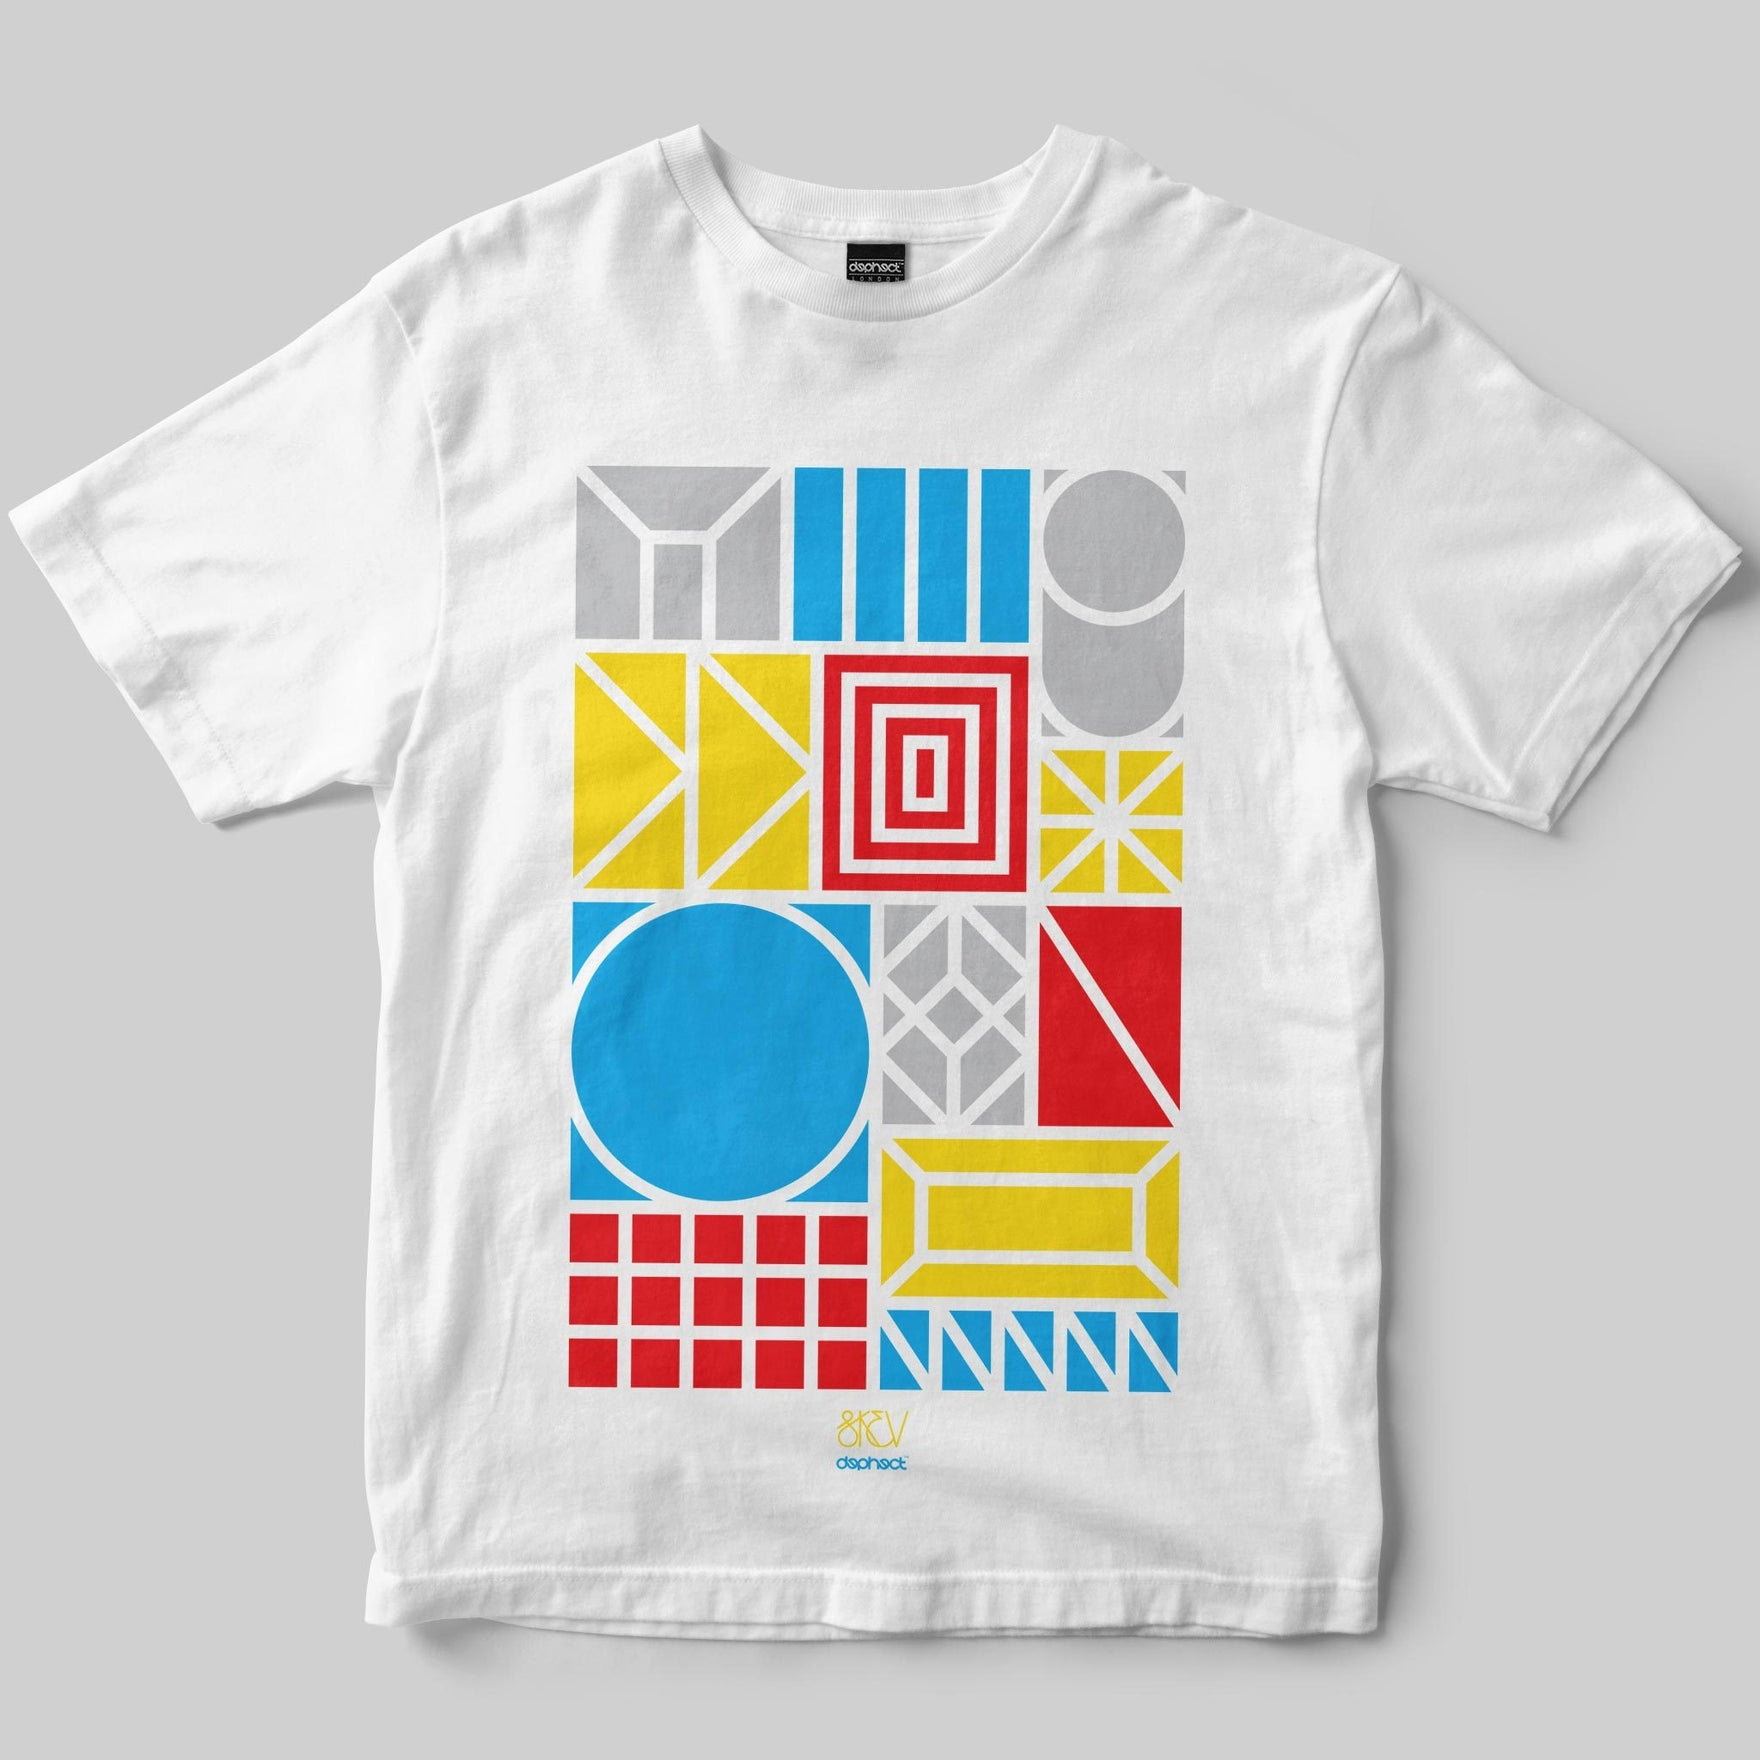 Shapes T-Shirt / White / by Skev